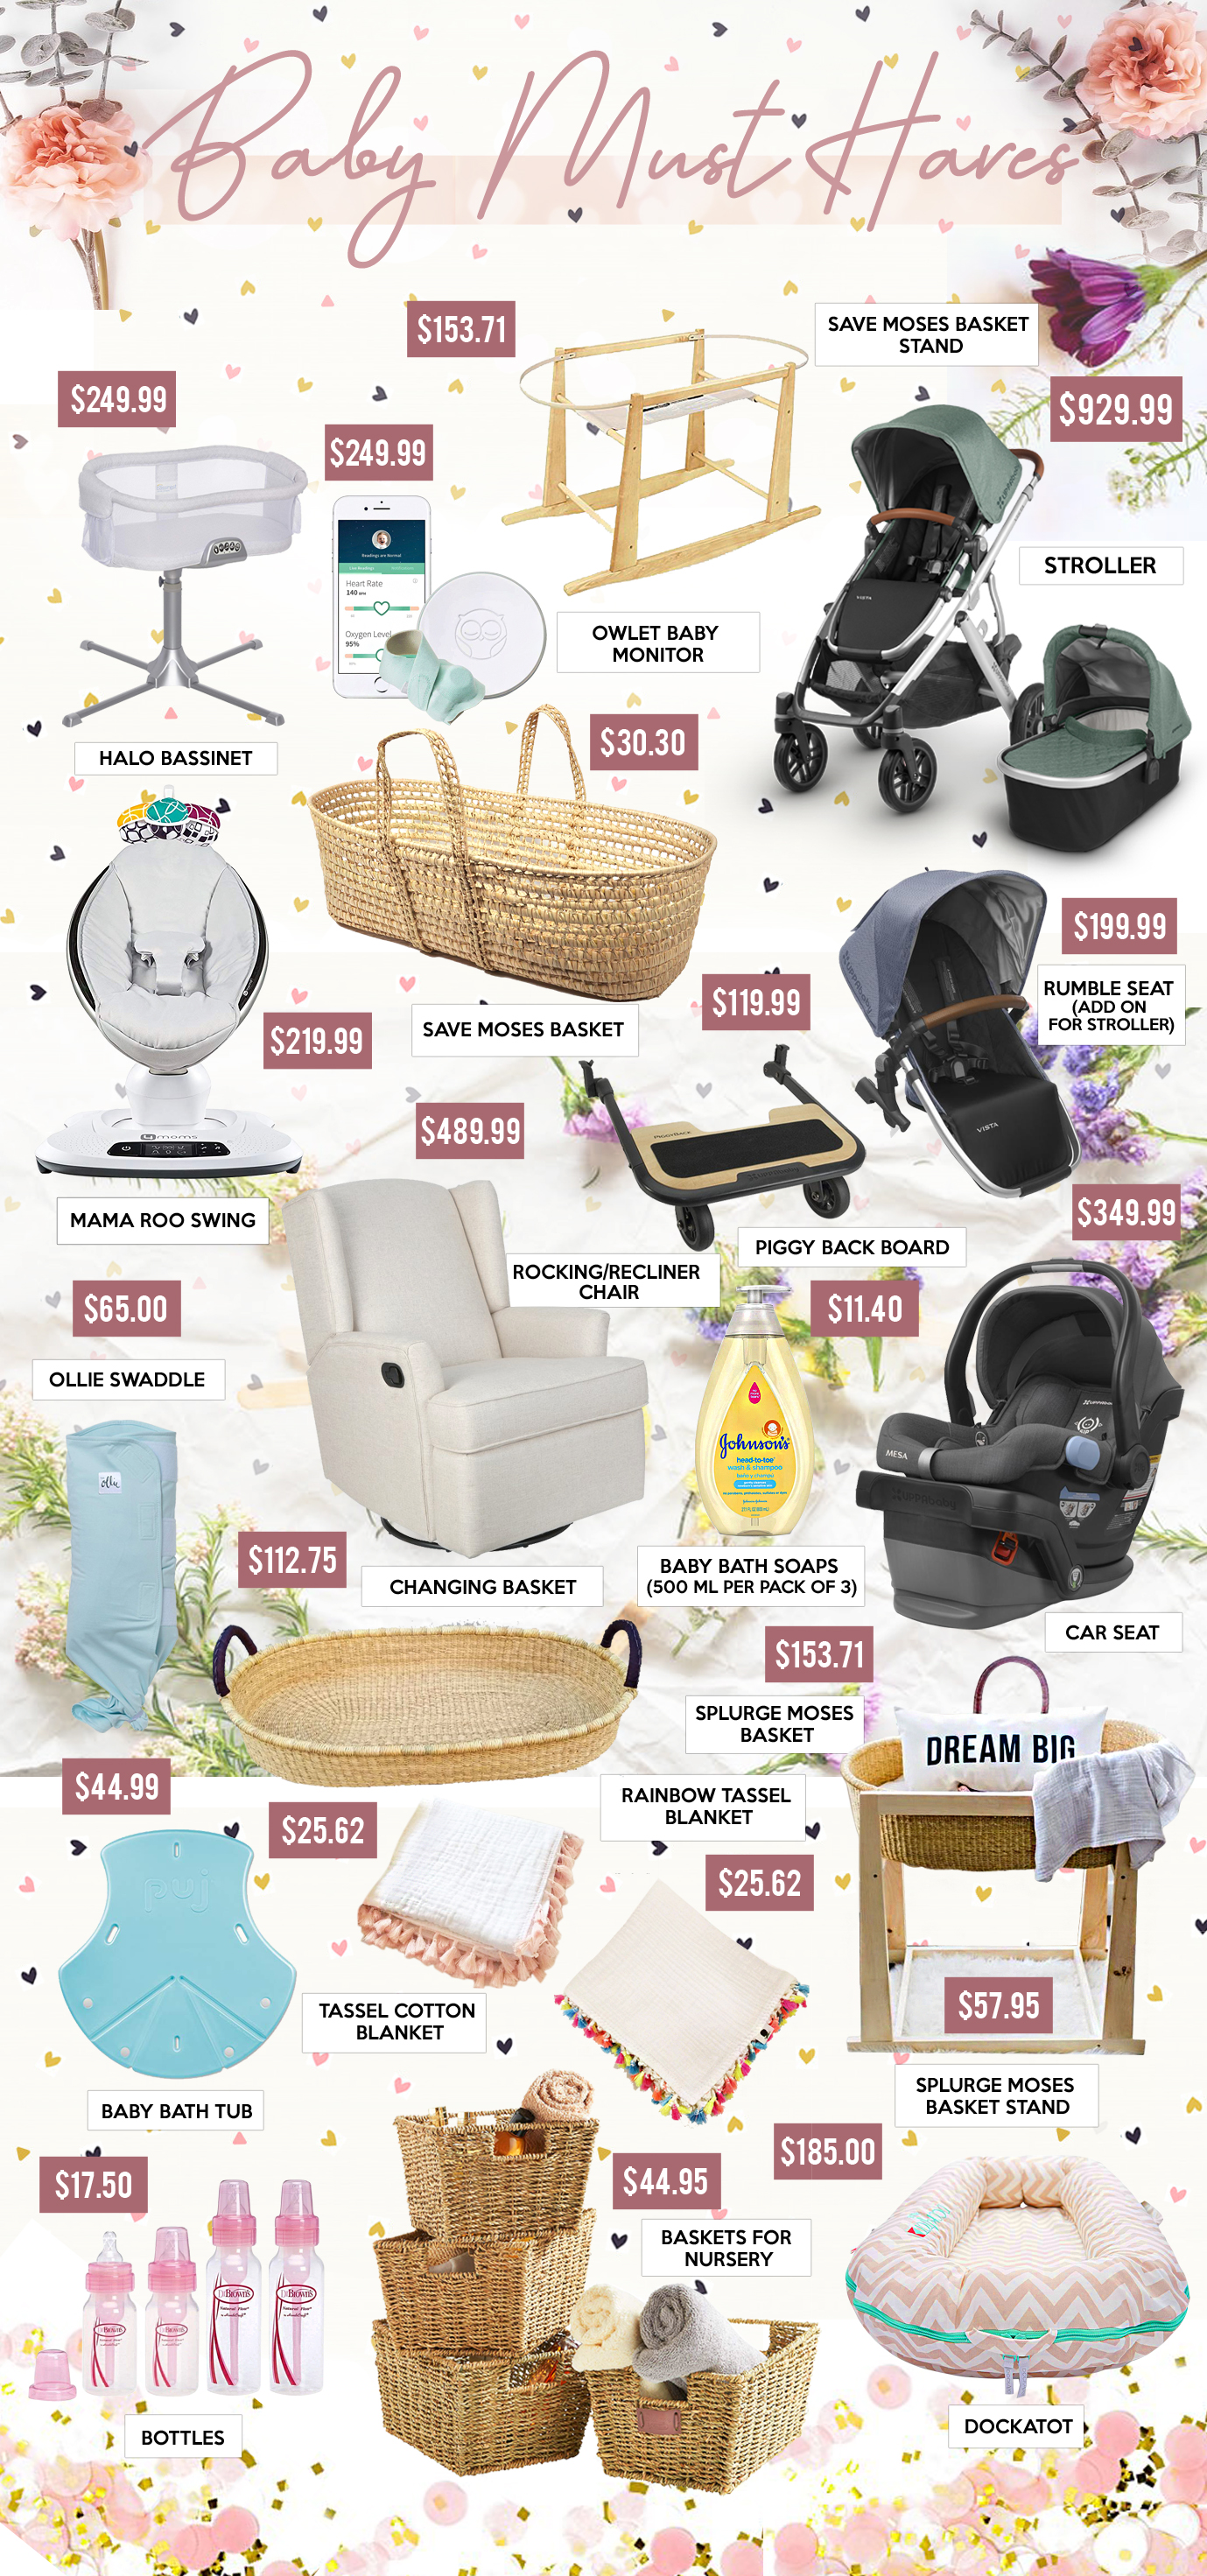 Gift Guide - BABY MUST HAVES